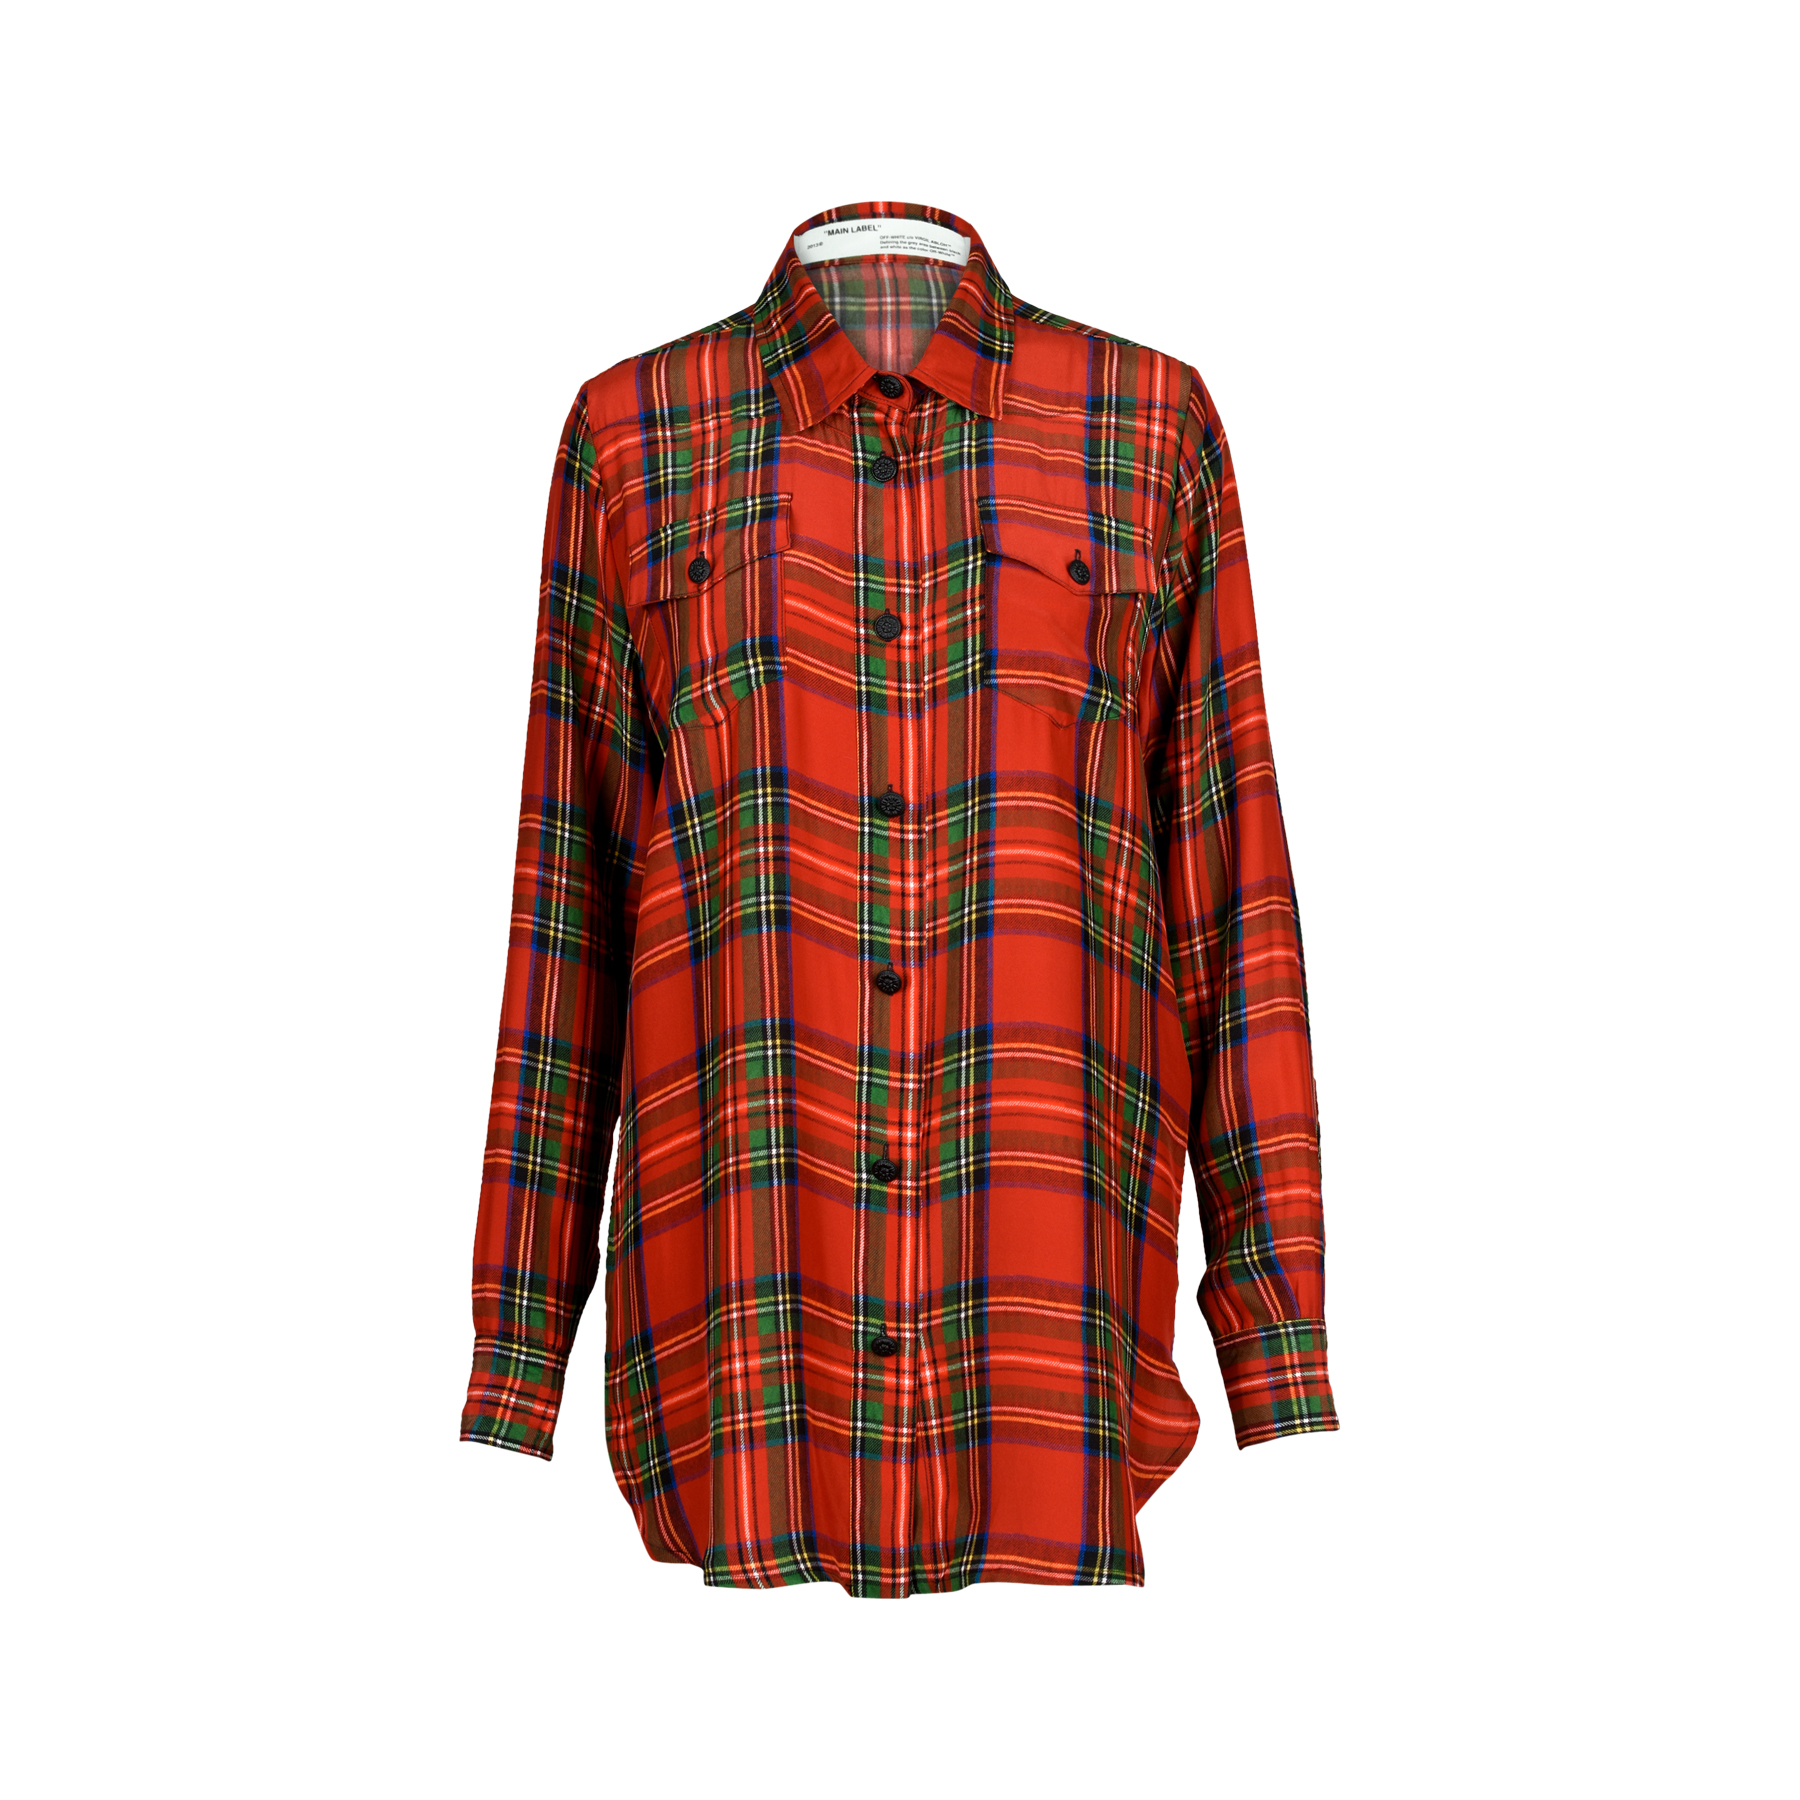 86eac9f9771e82 Authentic Second Hand Off-White 'WOMAN' Oversized Silk Plaid Shirt  (PSS-200-01192) - THE FIFTH COLLECTION